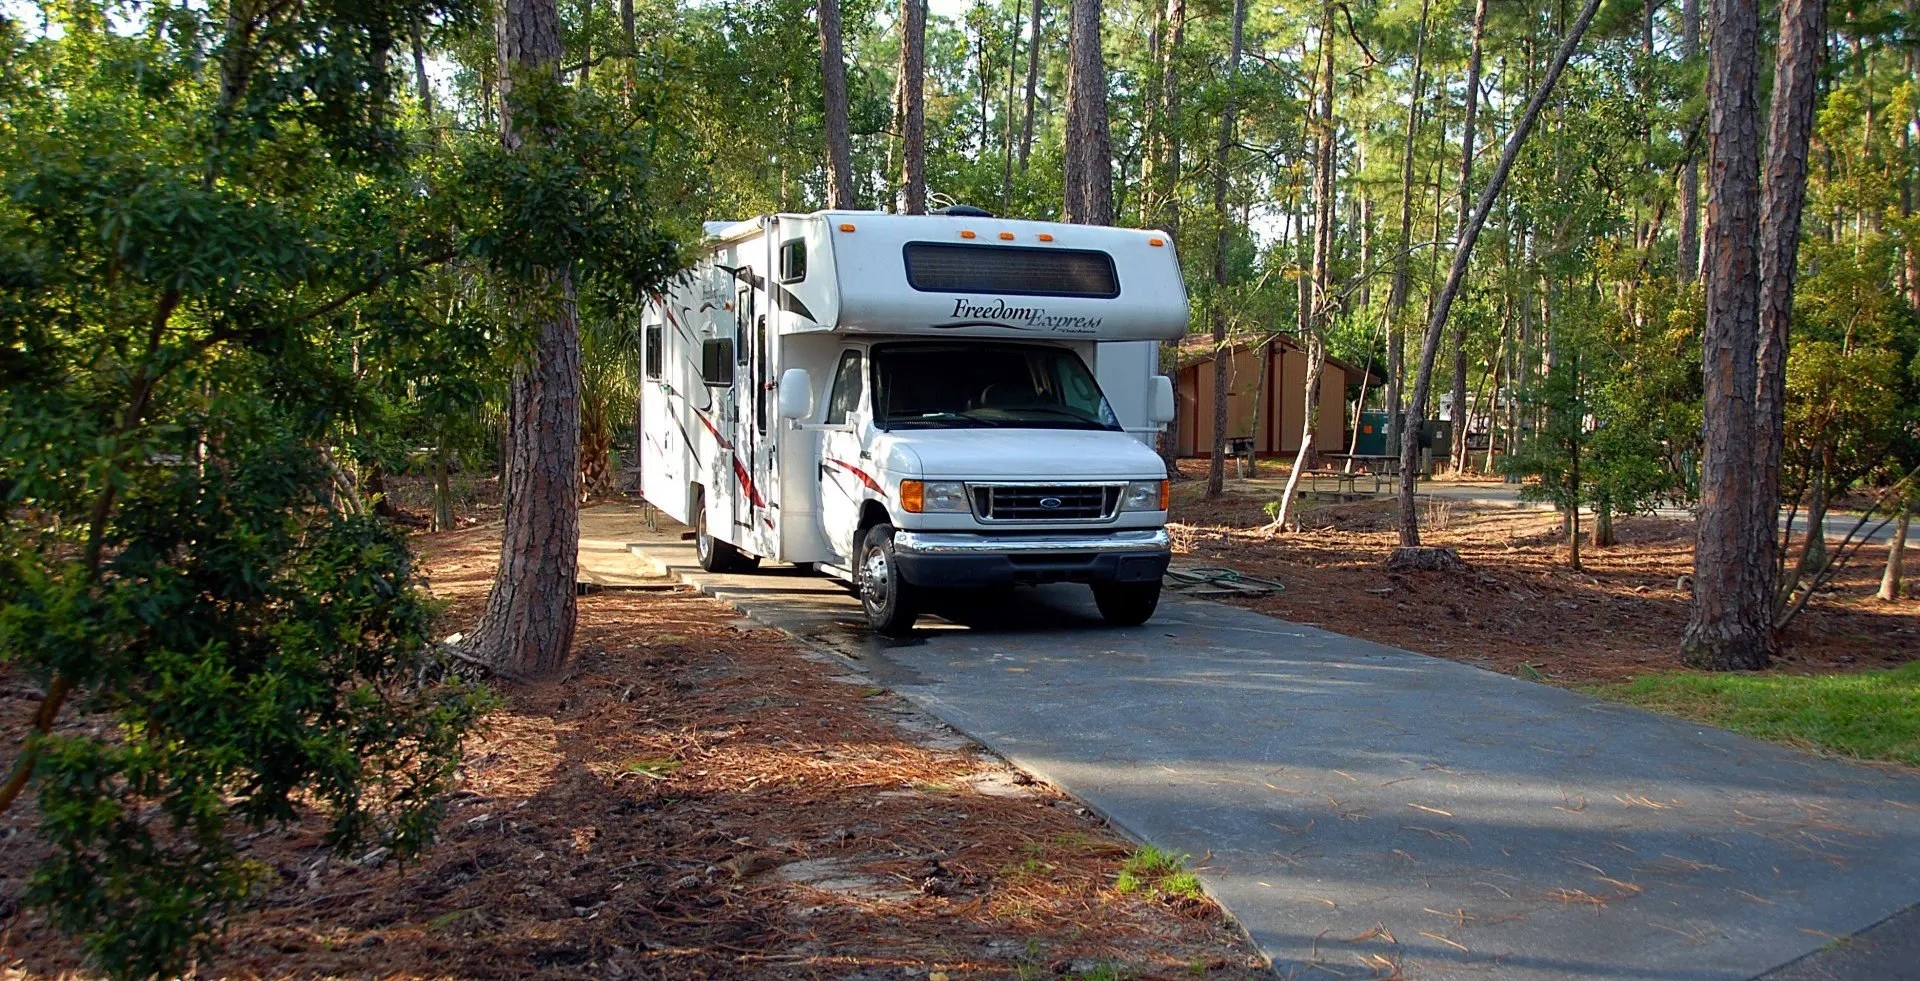 RV Vacation Spots